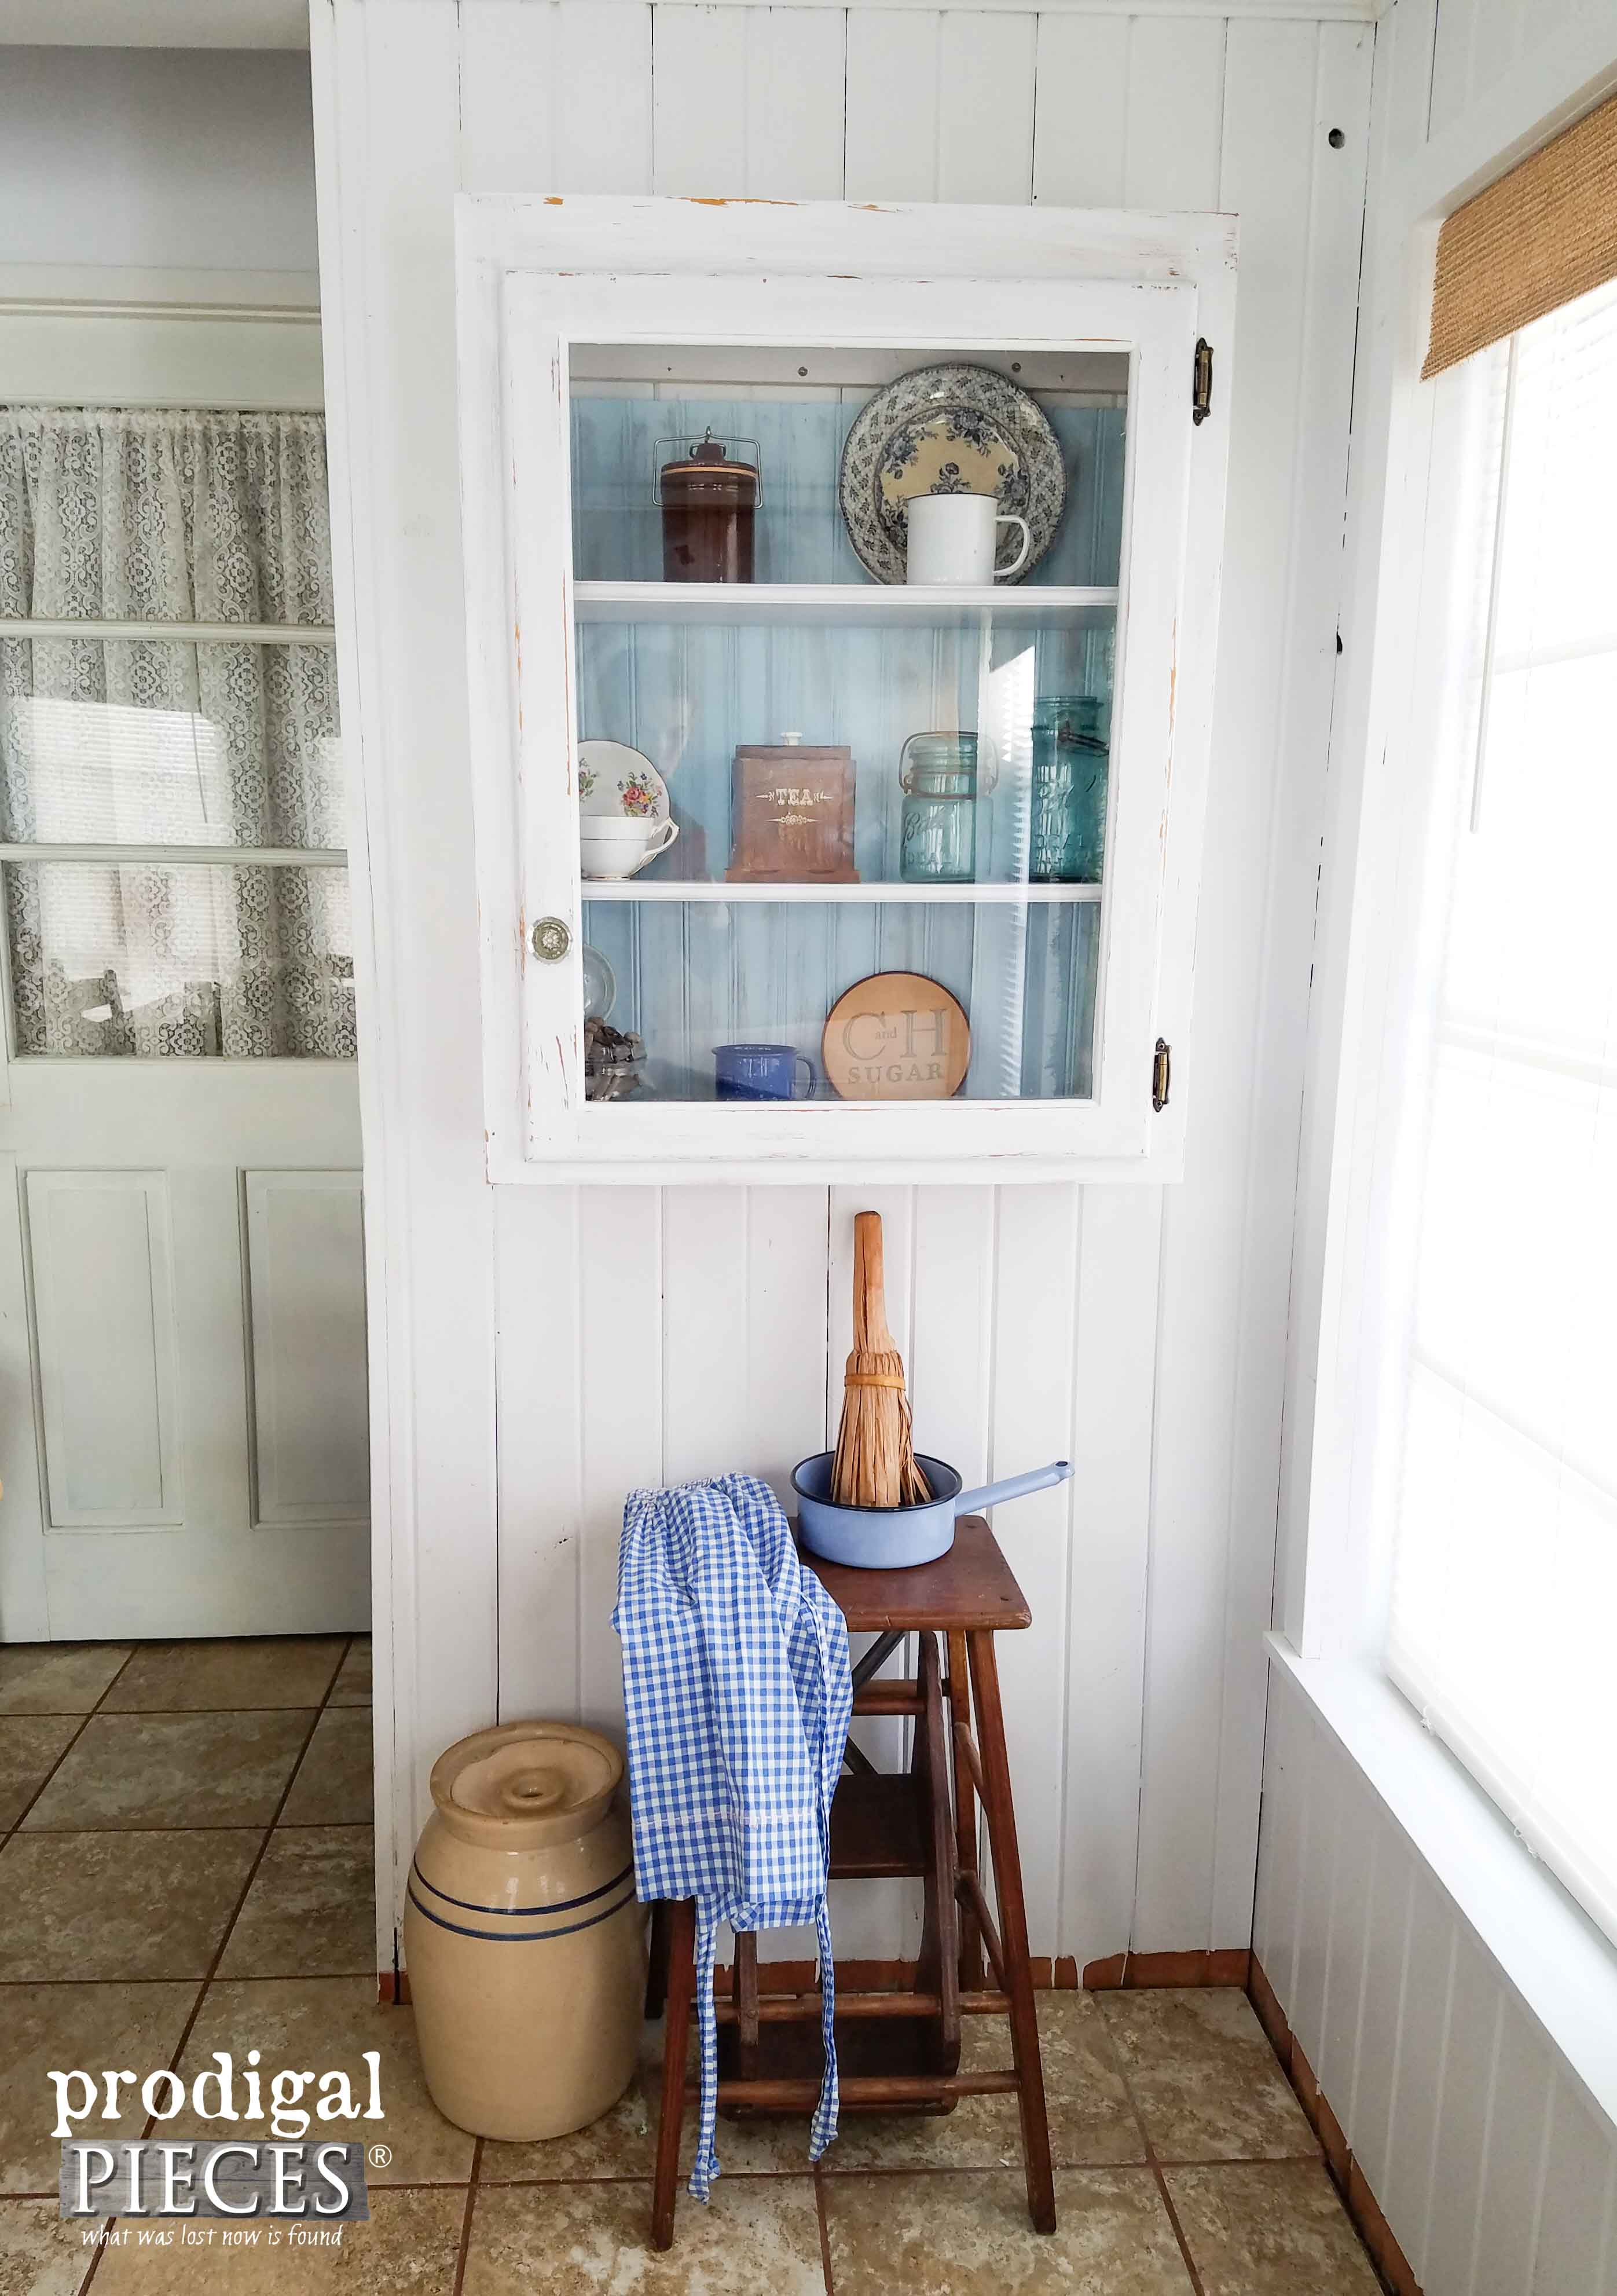 Rustic Farmhouse Cupboard Makeover by Prodigal Pieces | www.prodigalpieces.com